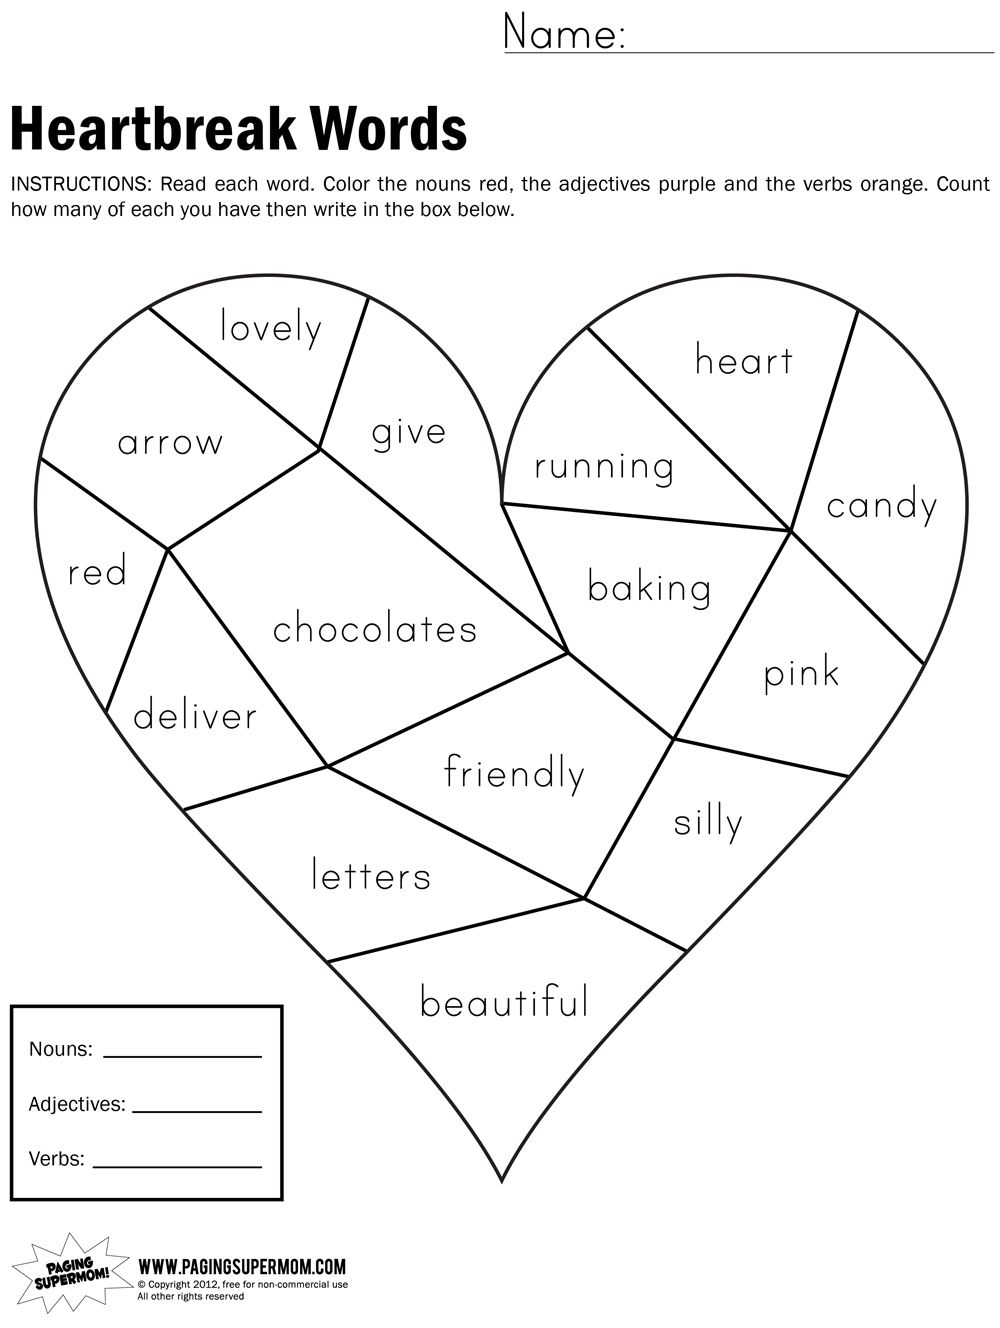 worksheet Third Grade Printable Worksheets heartbreak words free printable worksheet word worksheet